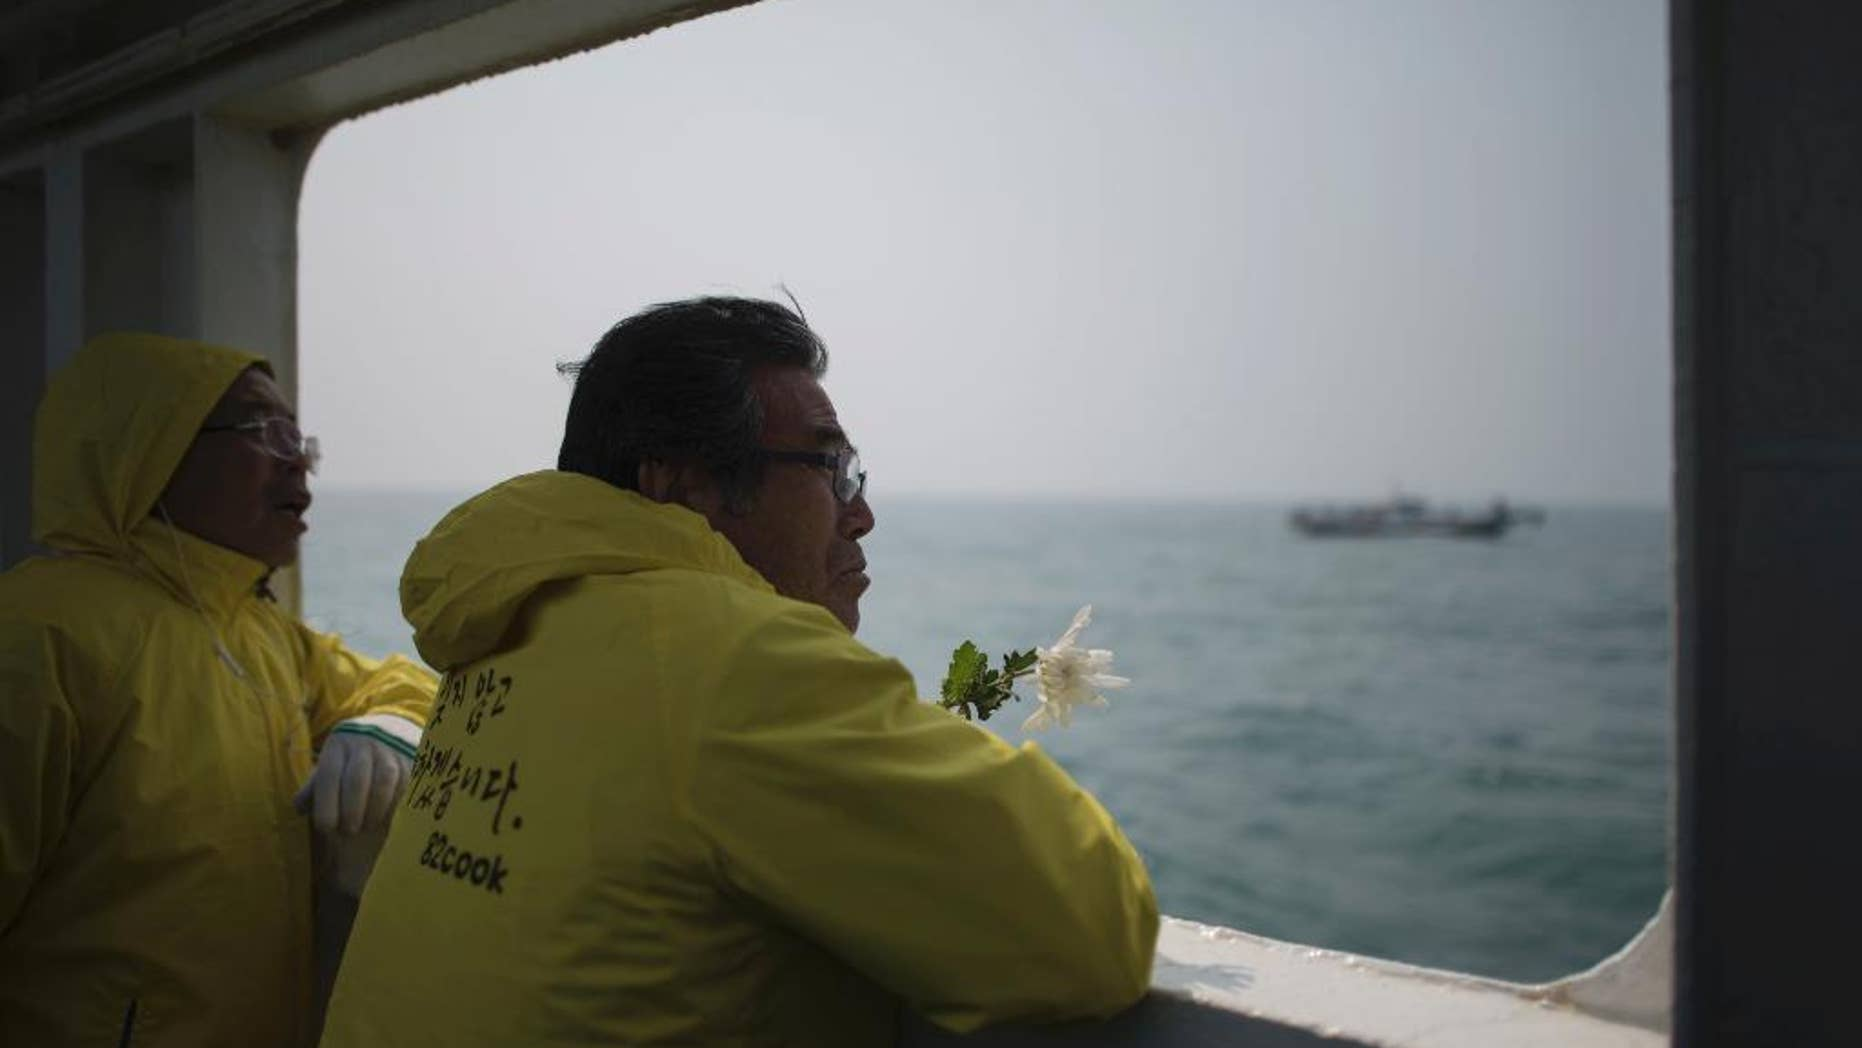 FILE - In this April 15, 2015, file photo, a relative of a victim of the ferry Sewol disaster watch the waters with flowers on the deck of a boat during a visit to the site of the sunken ferry, off the coast of South Korea's southern island of Jindo.  It took divers in South Korea more than three agonizing days just to enter the ferry Sewol after it sank on April 16, 2014. (Ed Jones/Pool Photo via AP, File)